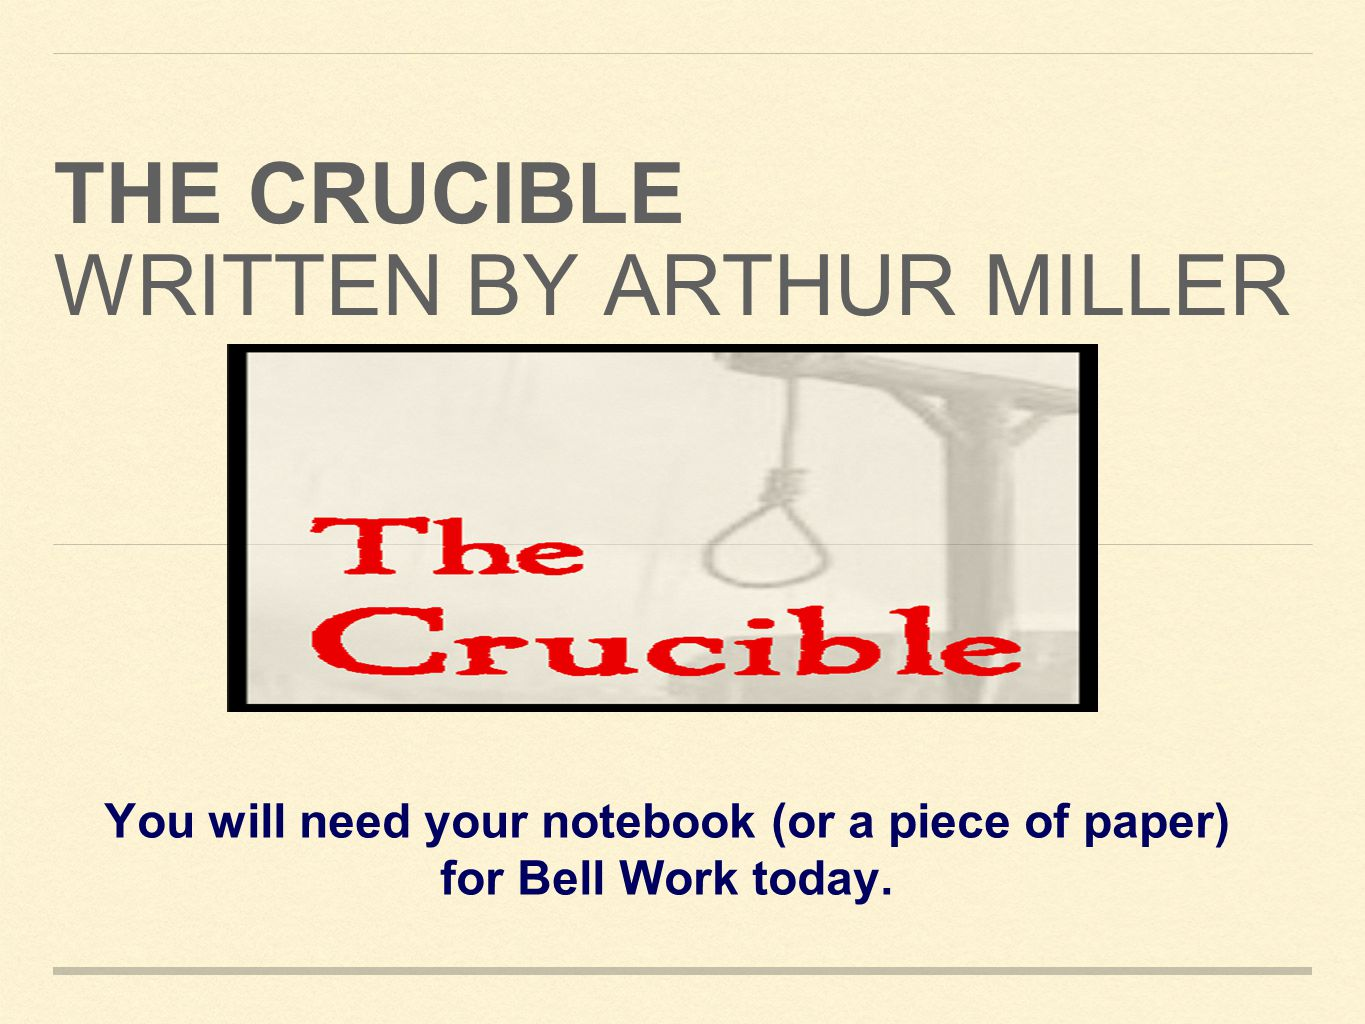 the crucible written by arthur miller you will need your notebook 1 the crucible written by arthur miller you will need your notebook or a piece of paper for bell work today